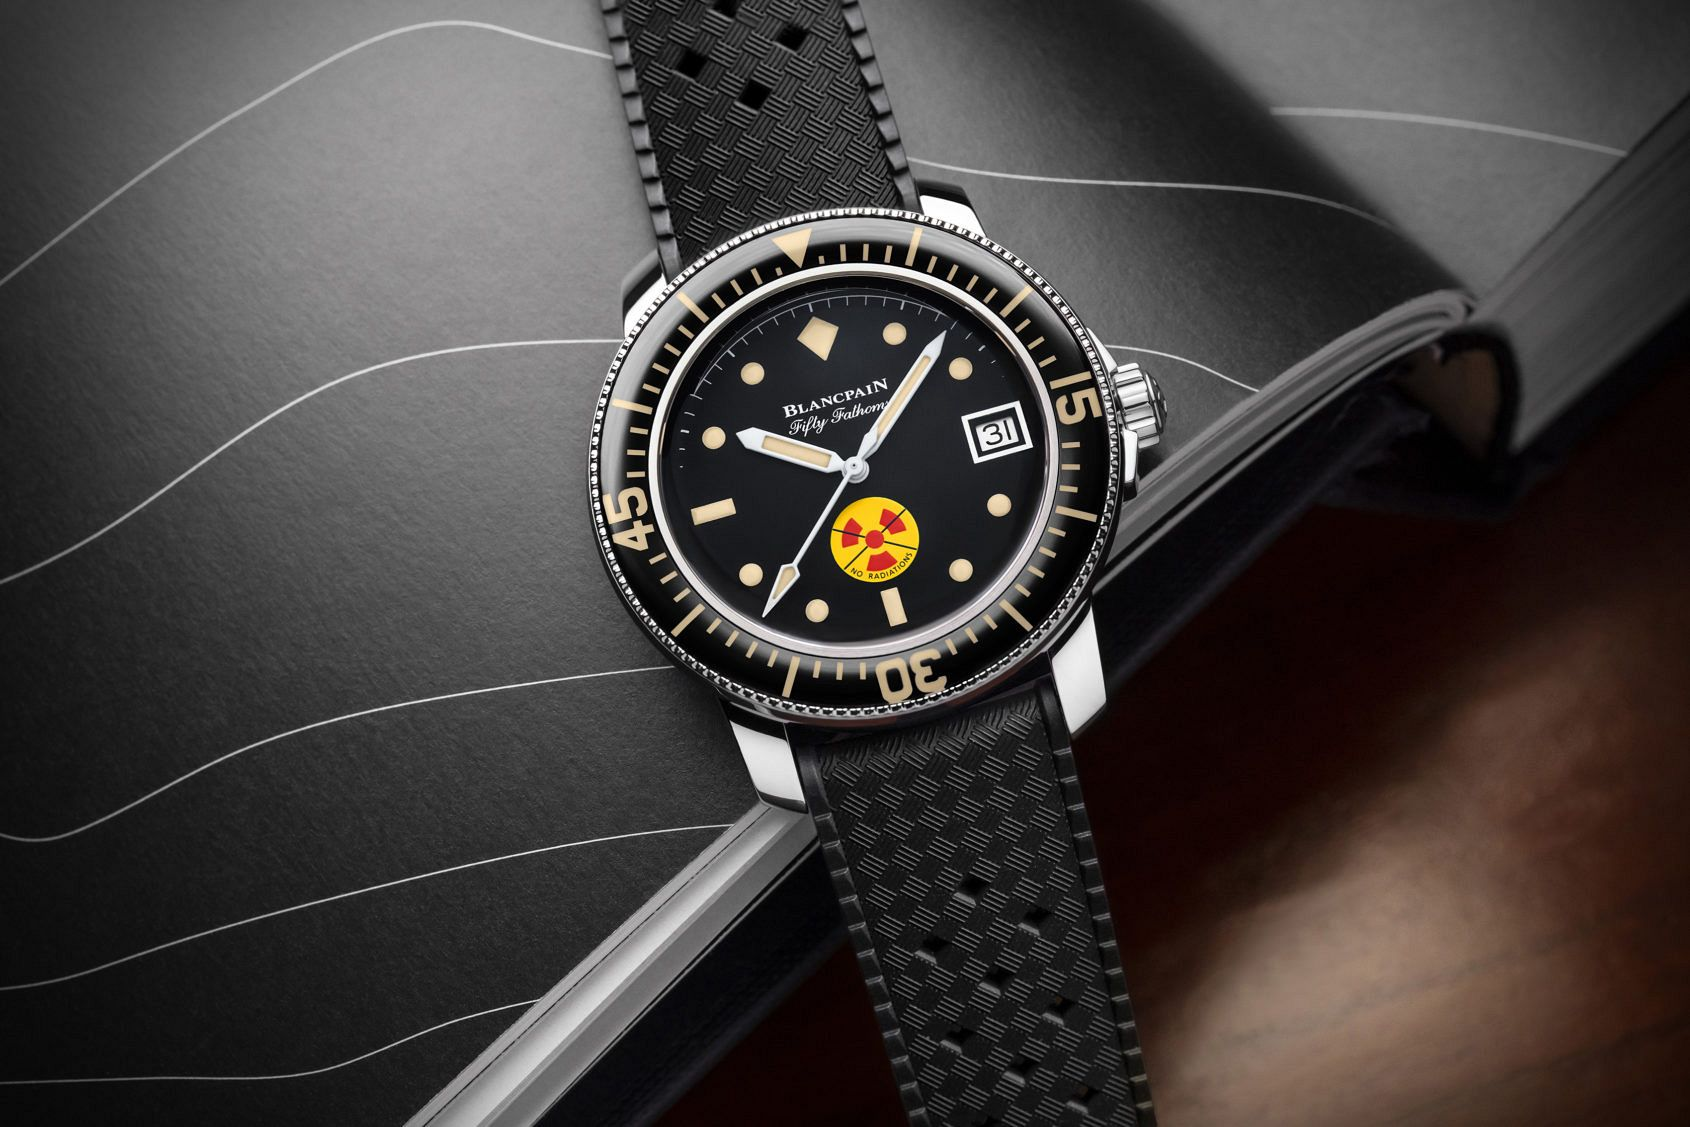 INTRODUCING: The Blancpain Tribute to Fifty Fathoms No Rad Limited Edition